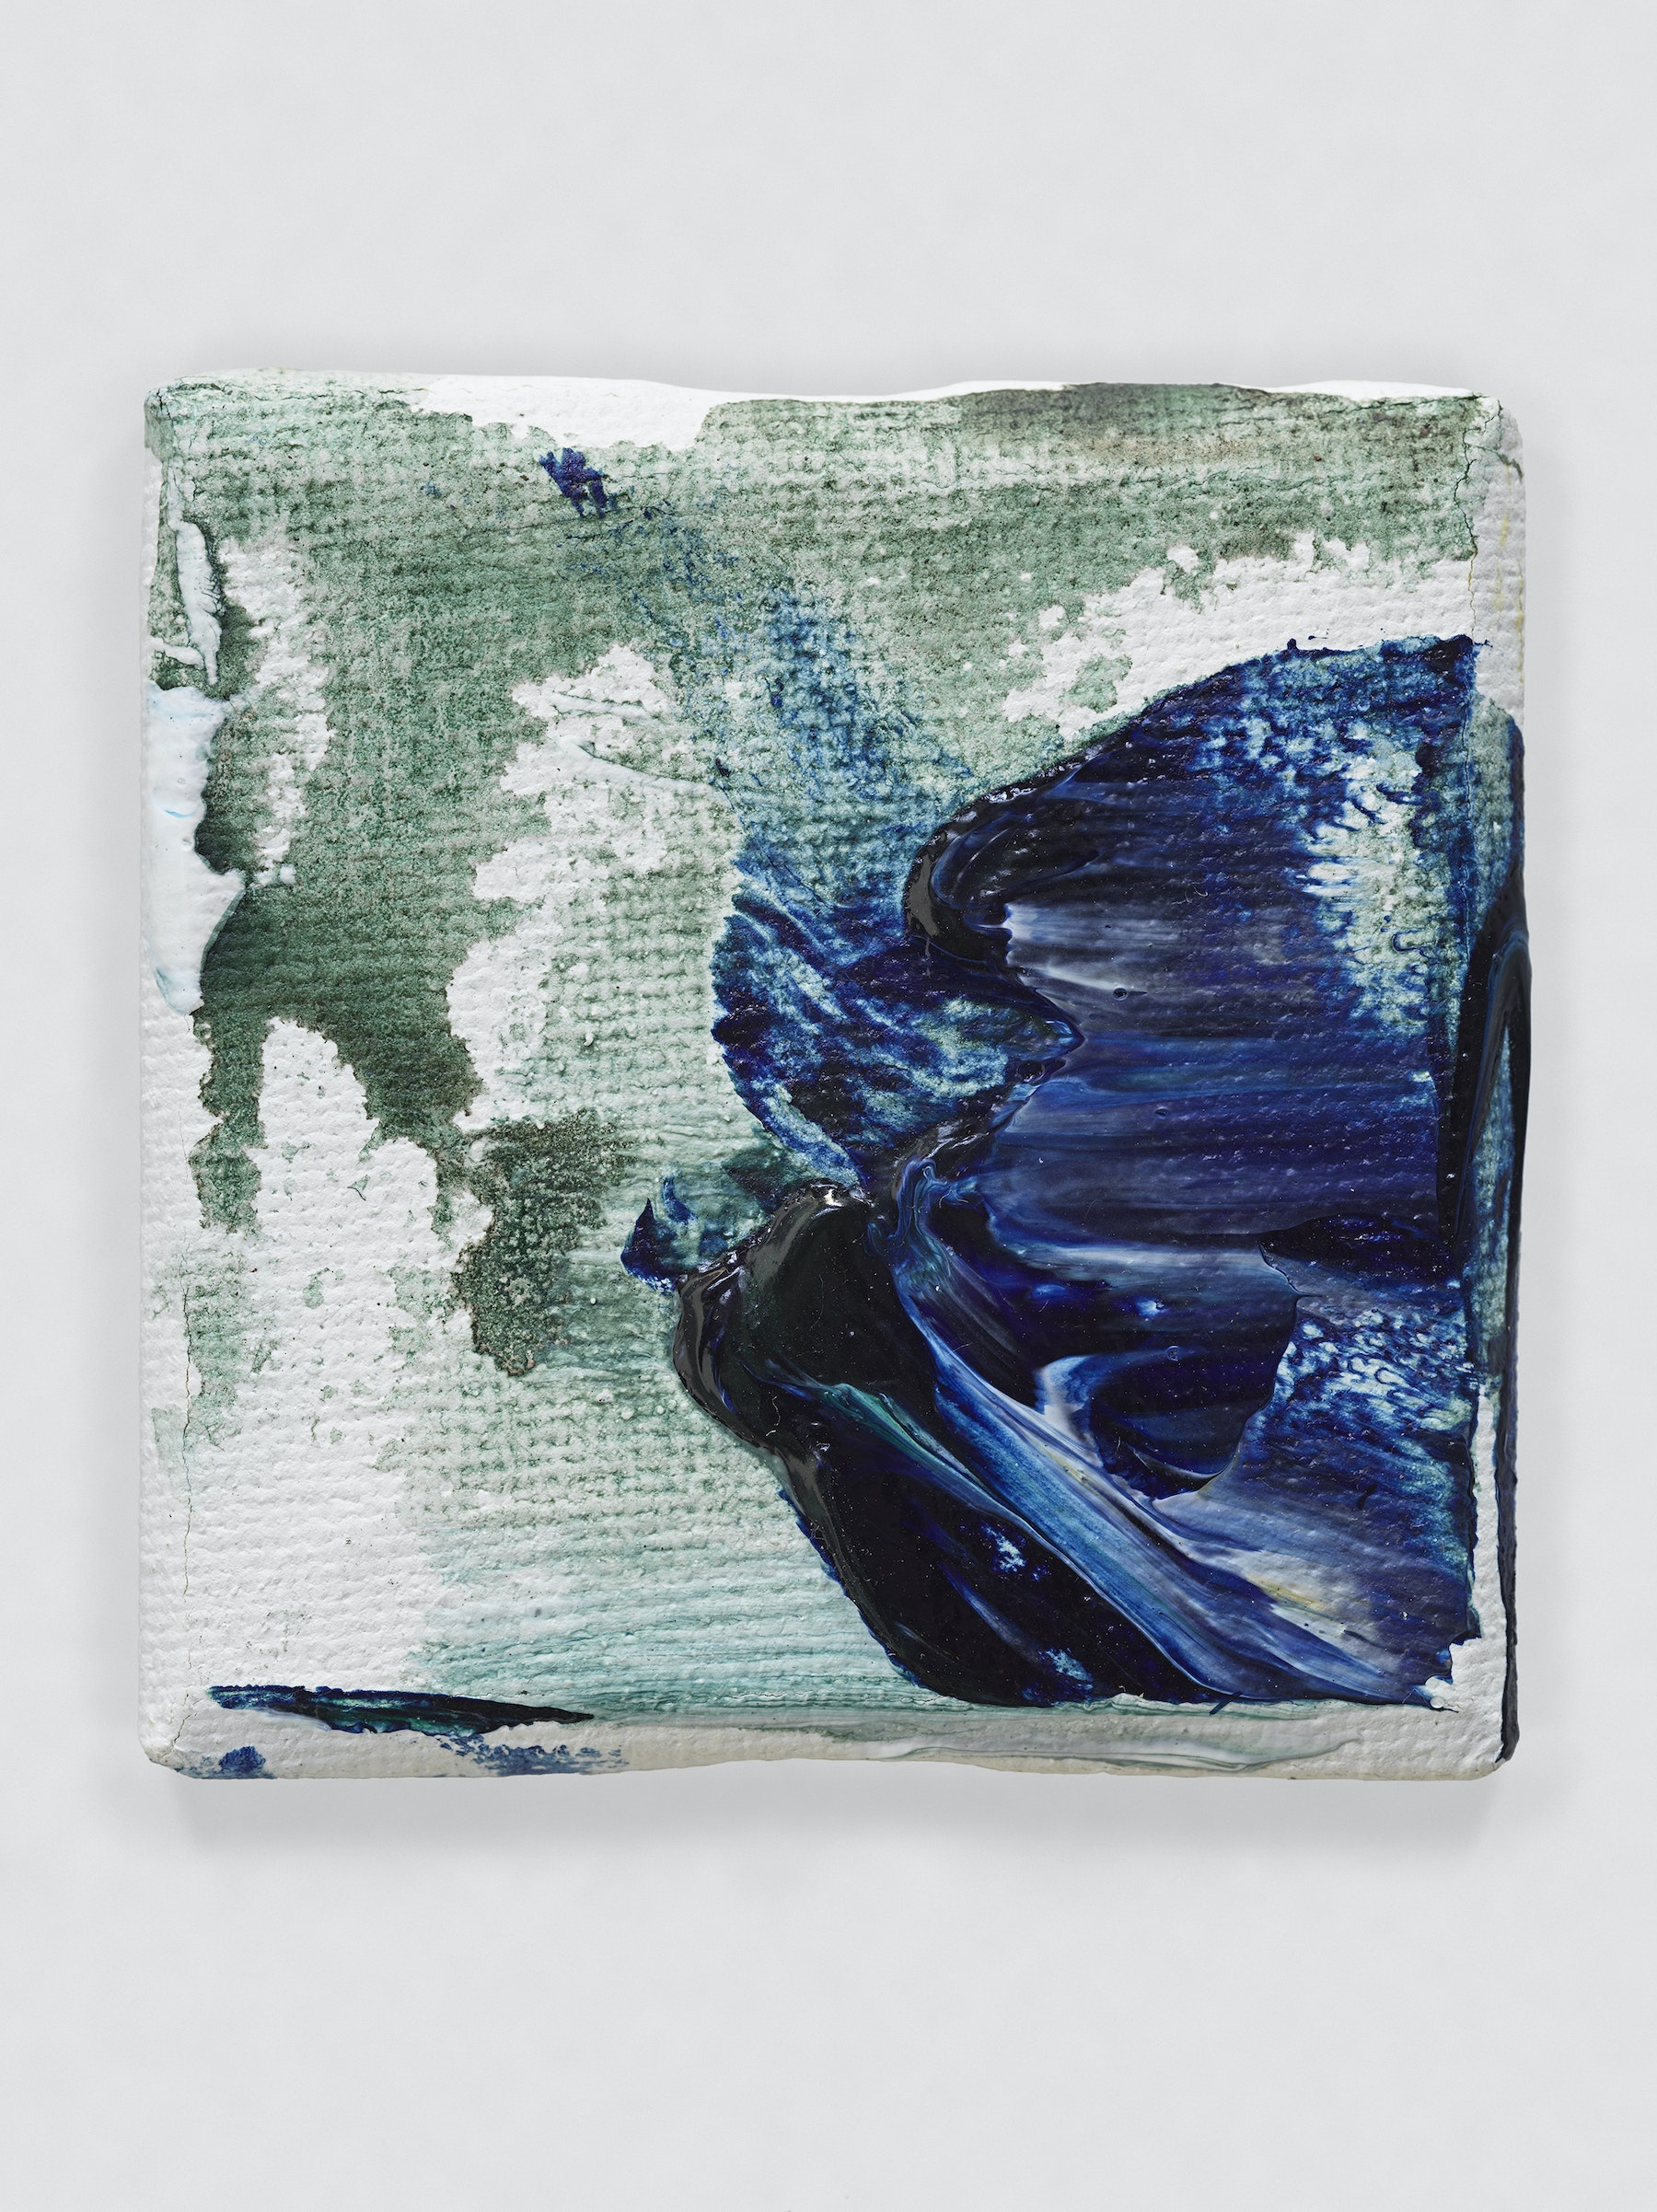 """Louise Fishman """"UNTITLED,"""" 2014 Oil on canvas 2 x 2"""" [HxW] (5.08 x 5.08 cm) Inventory #FIS155 Courtesy of the artist and Vielmetter Los Angeles Photo credit: Genevieve Hanson Signed and dated on verso"""